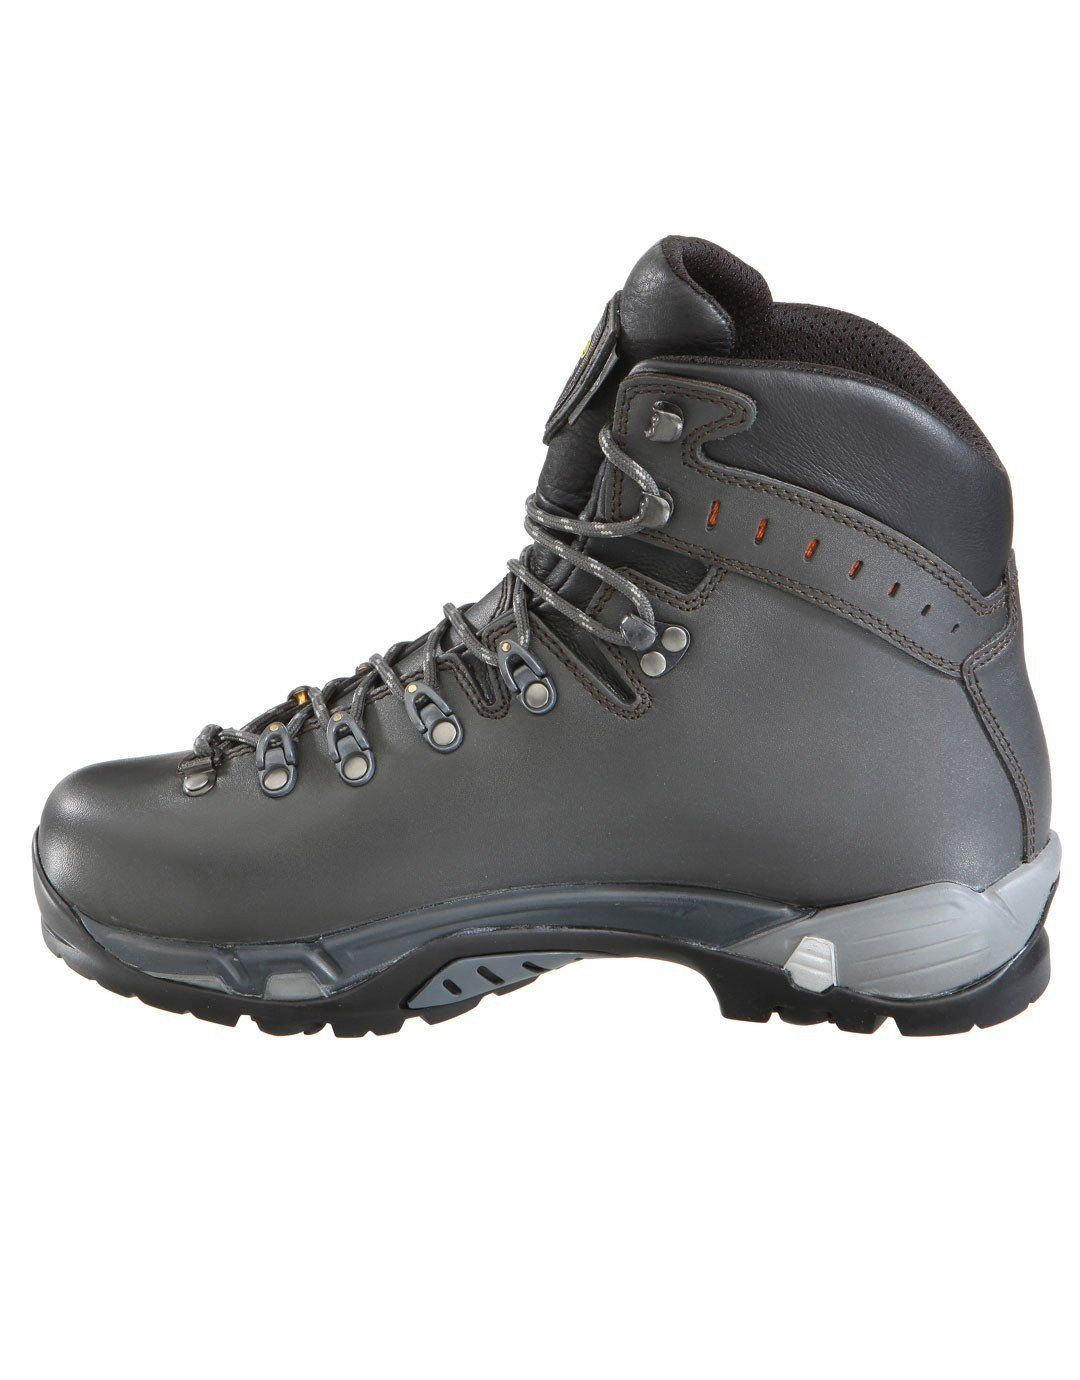 7d2a18e8be9 Asolo Power Matic 200 GV Walking Boots UK 11 Dark Graphite ** Check ...